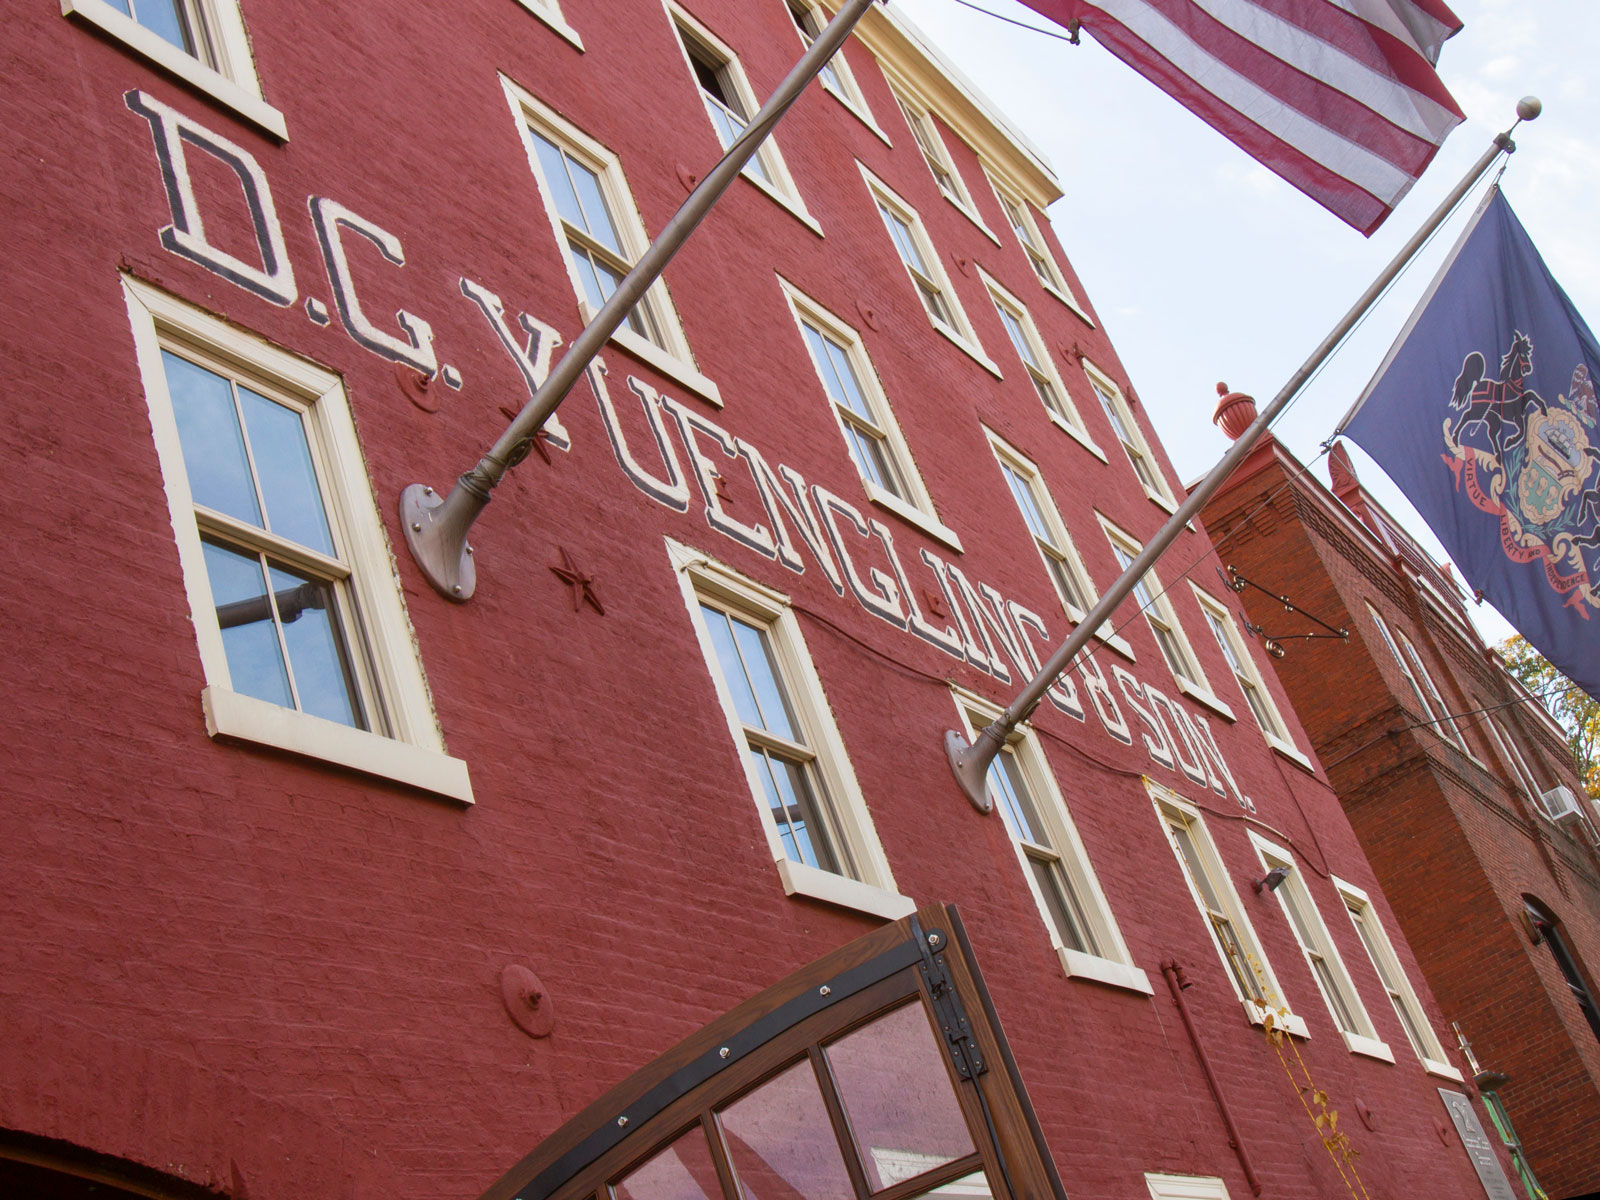 Yuengling Is the Latest Brewery to Plan a Beer-Themed Hotel